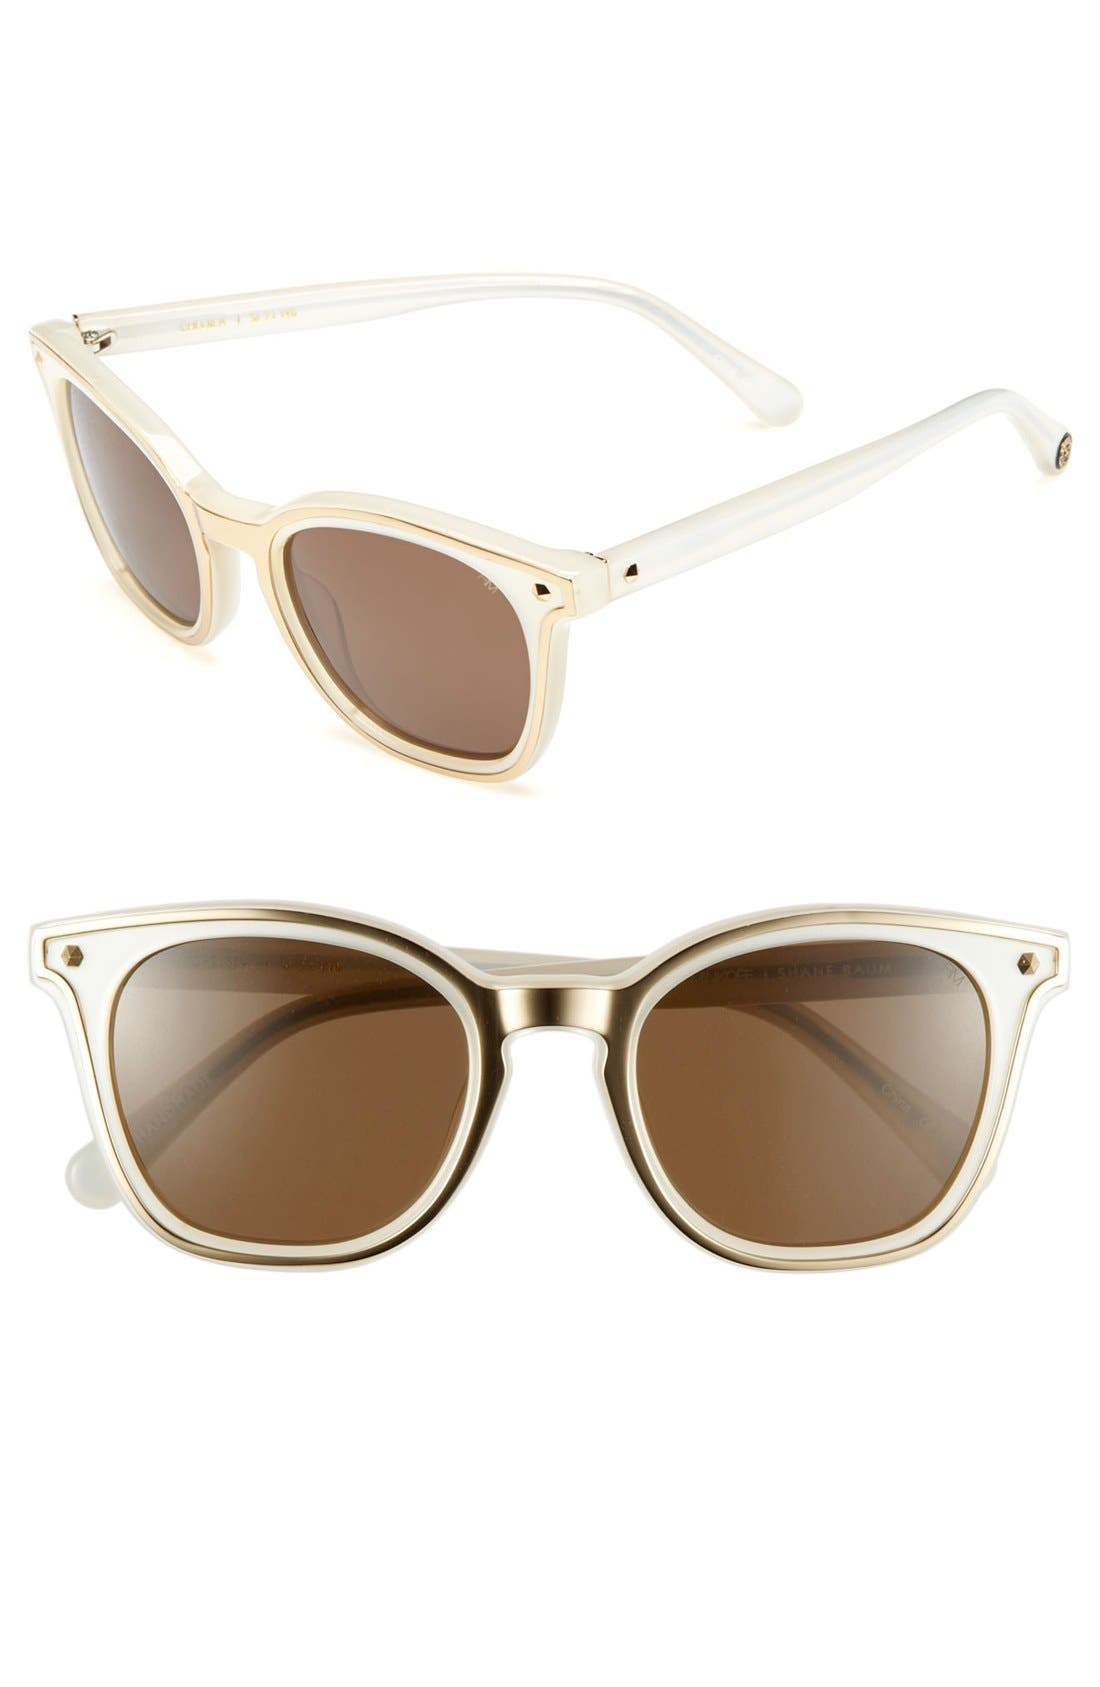 Alternate Image 1 Selected - Rebecca Minkoff 'Chelsea' Sunglasses